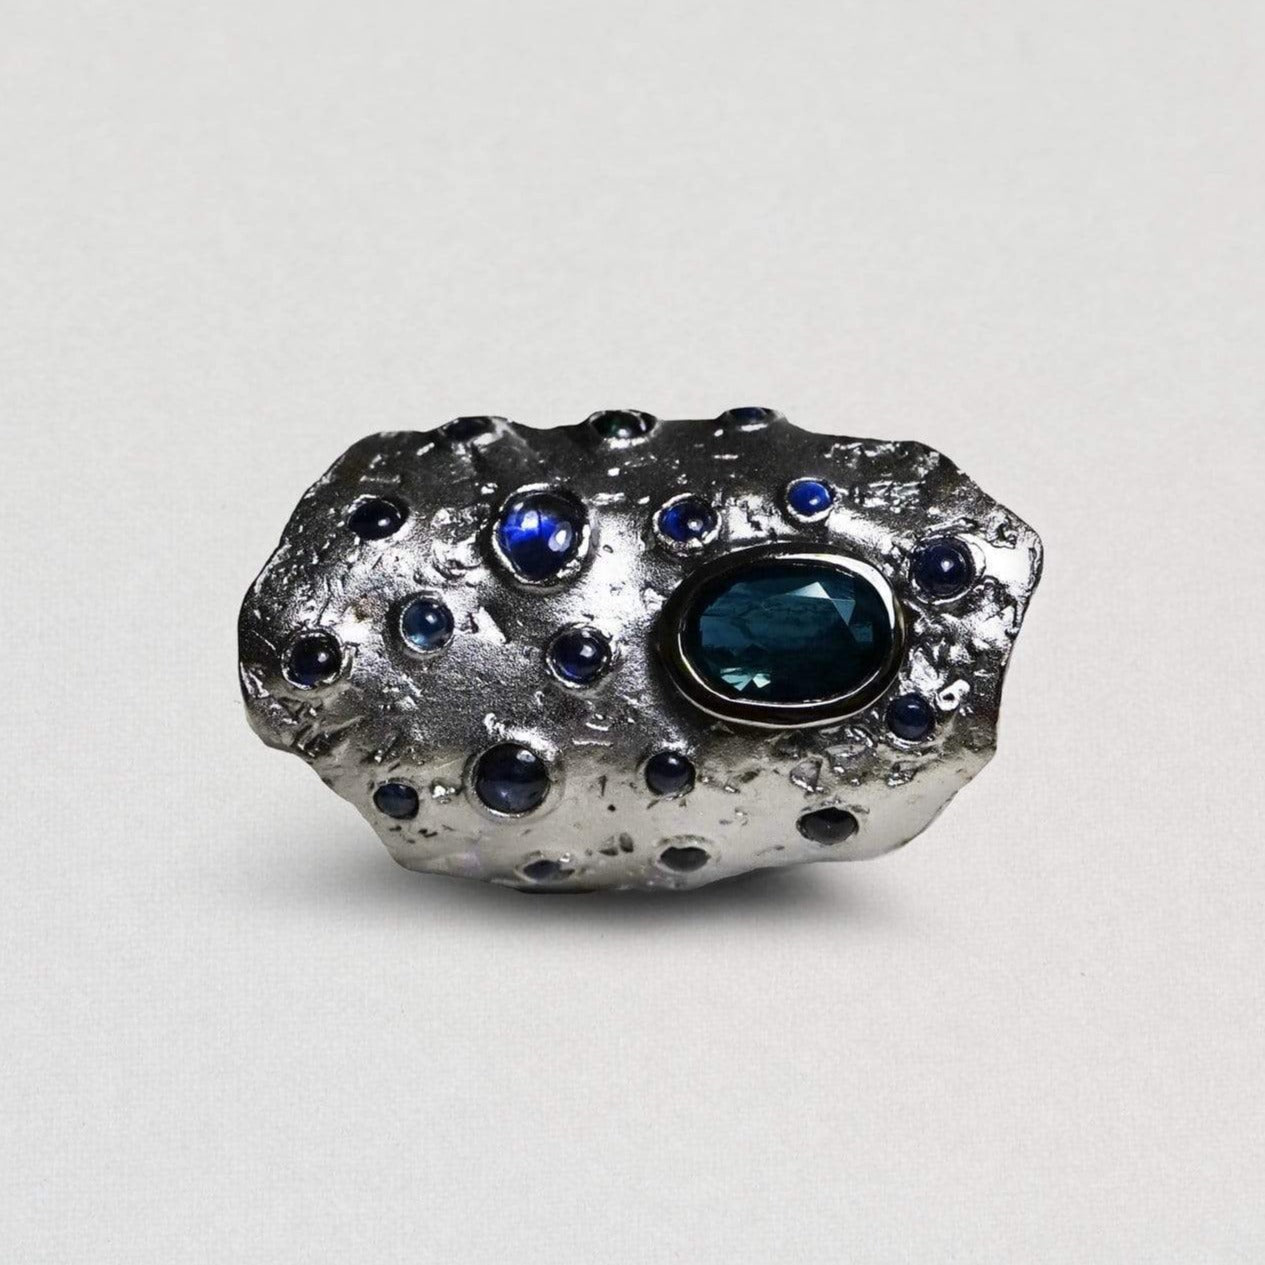 Sanctus Ring, Exclusive, gray, Rhodium, Sapphire, spo-disabled, StoneColor:DeepBlue, Style:Everyday, Type:StoneCandyScattered Ring